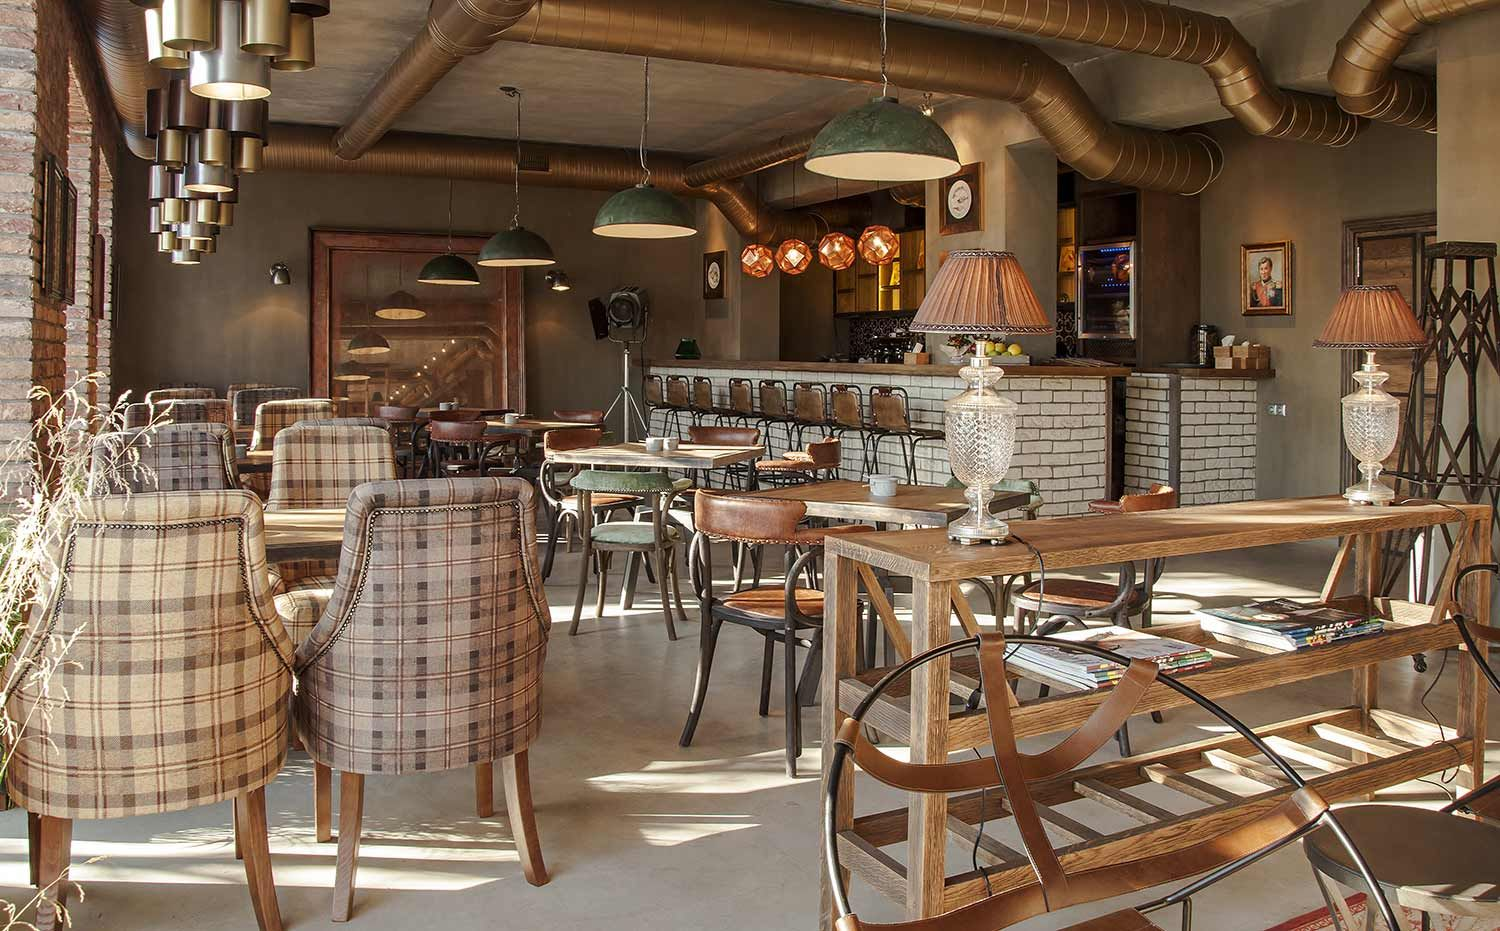 Decoraci n de restaurantes con muebles estilo industrial proyectos bars and restaurants - Decoracion locales hosteleria ...